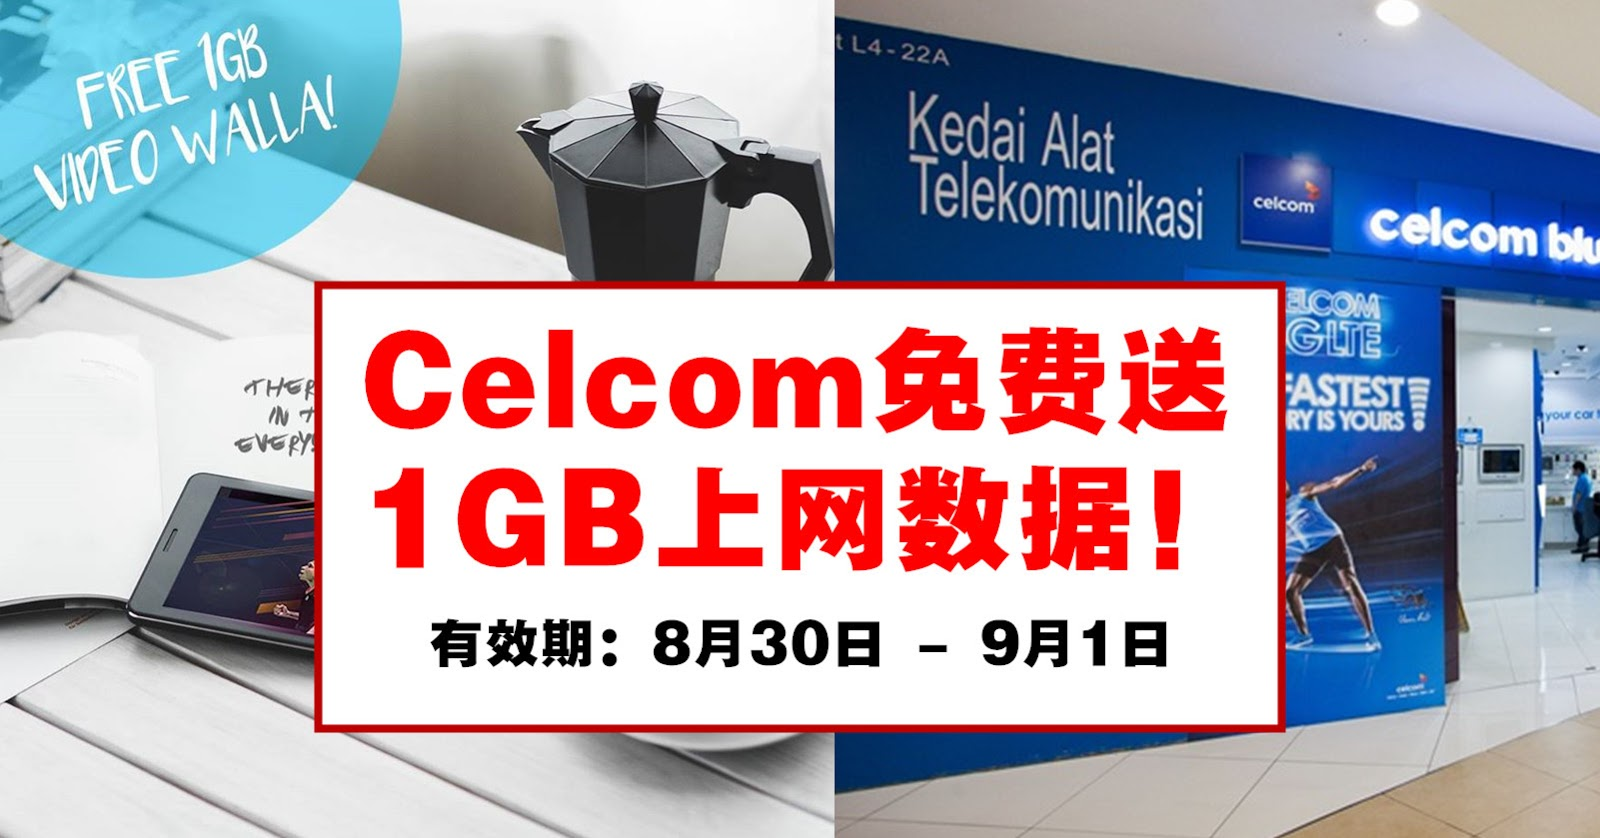 Celcom免费送100GB Video Walla Data - WINRAYLAND